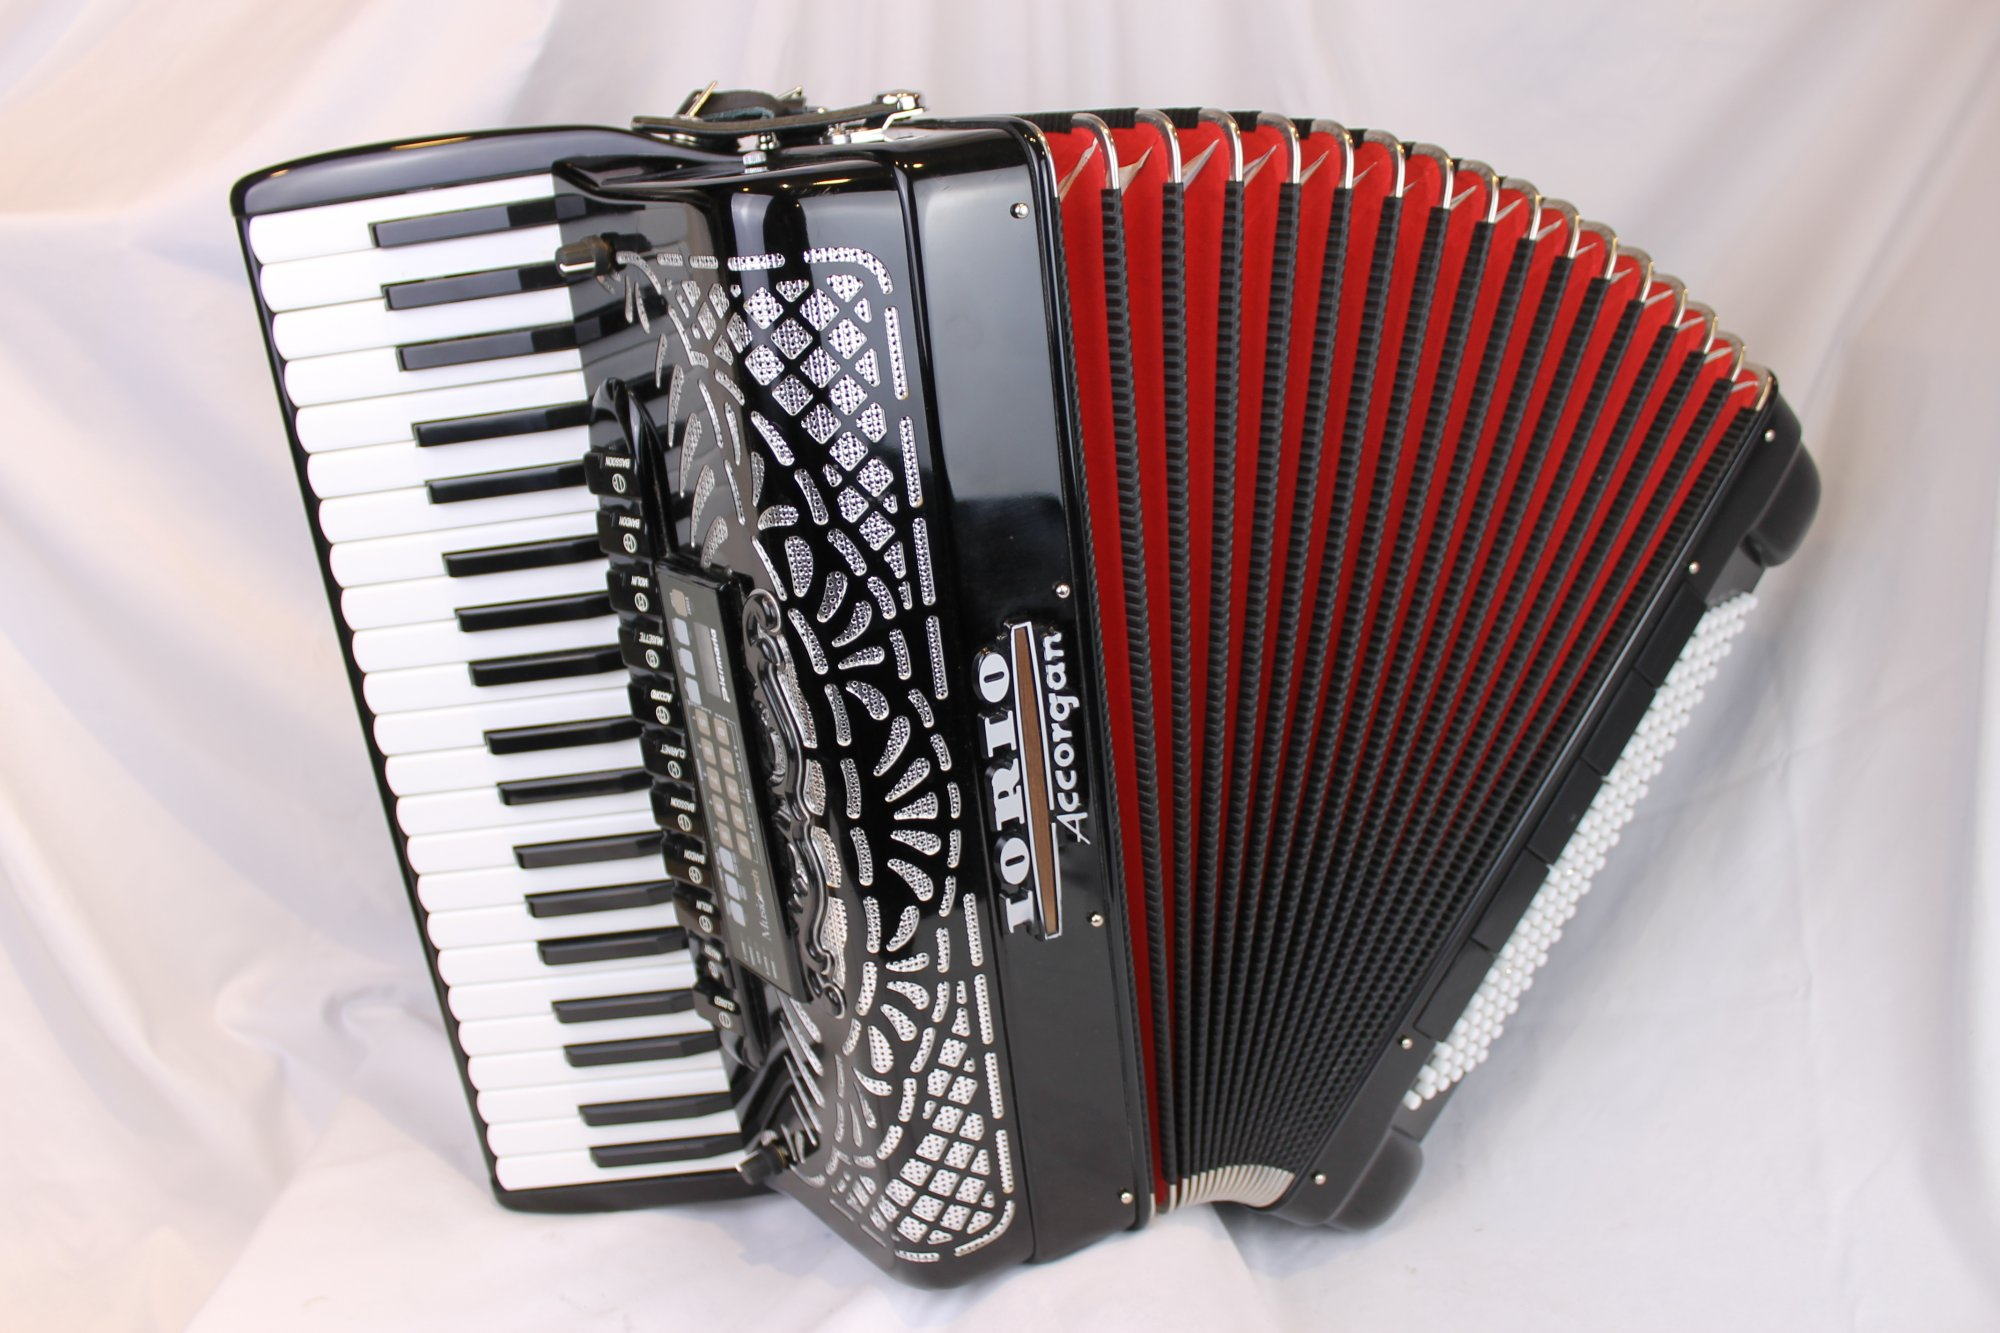 3941 - Black Iorio K Series Accorgan Model 411 Piano Accordion LMMM 41 120